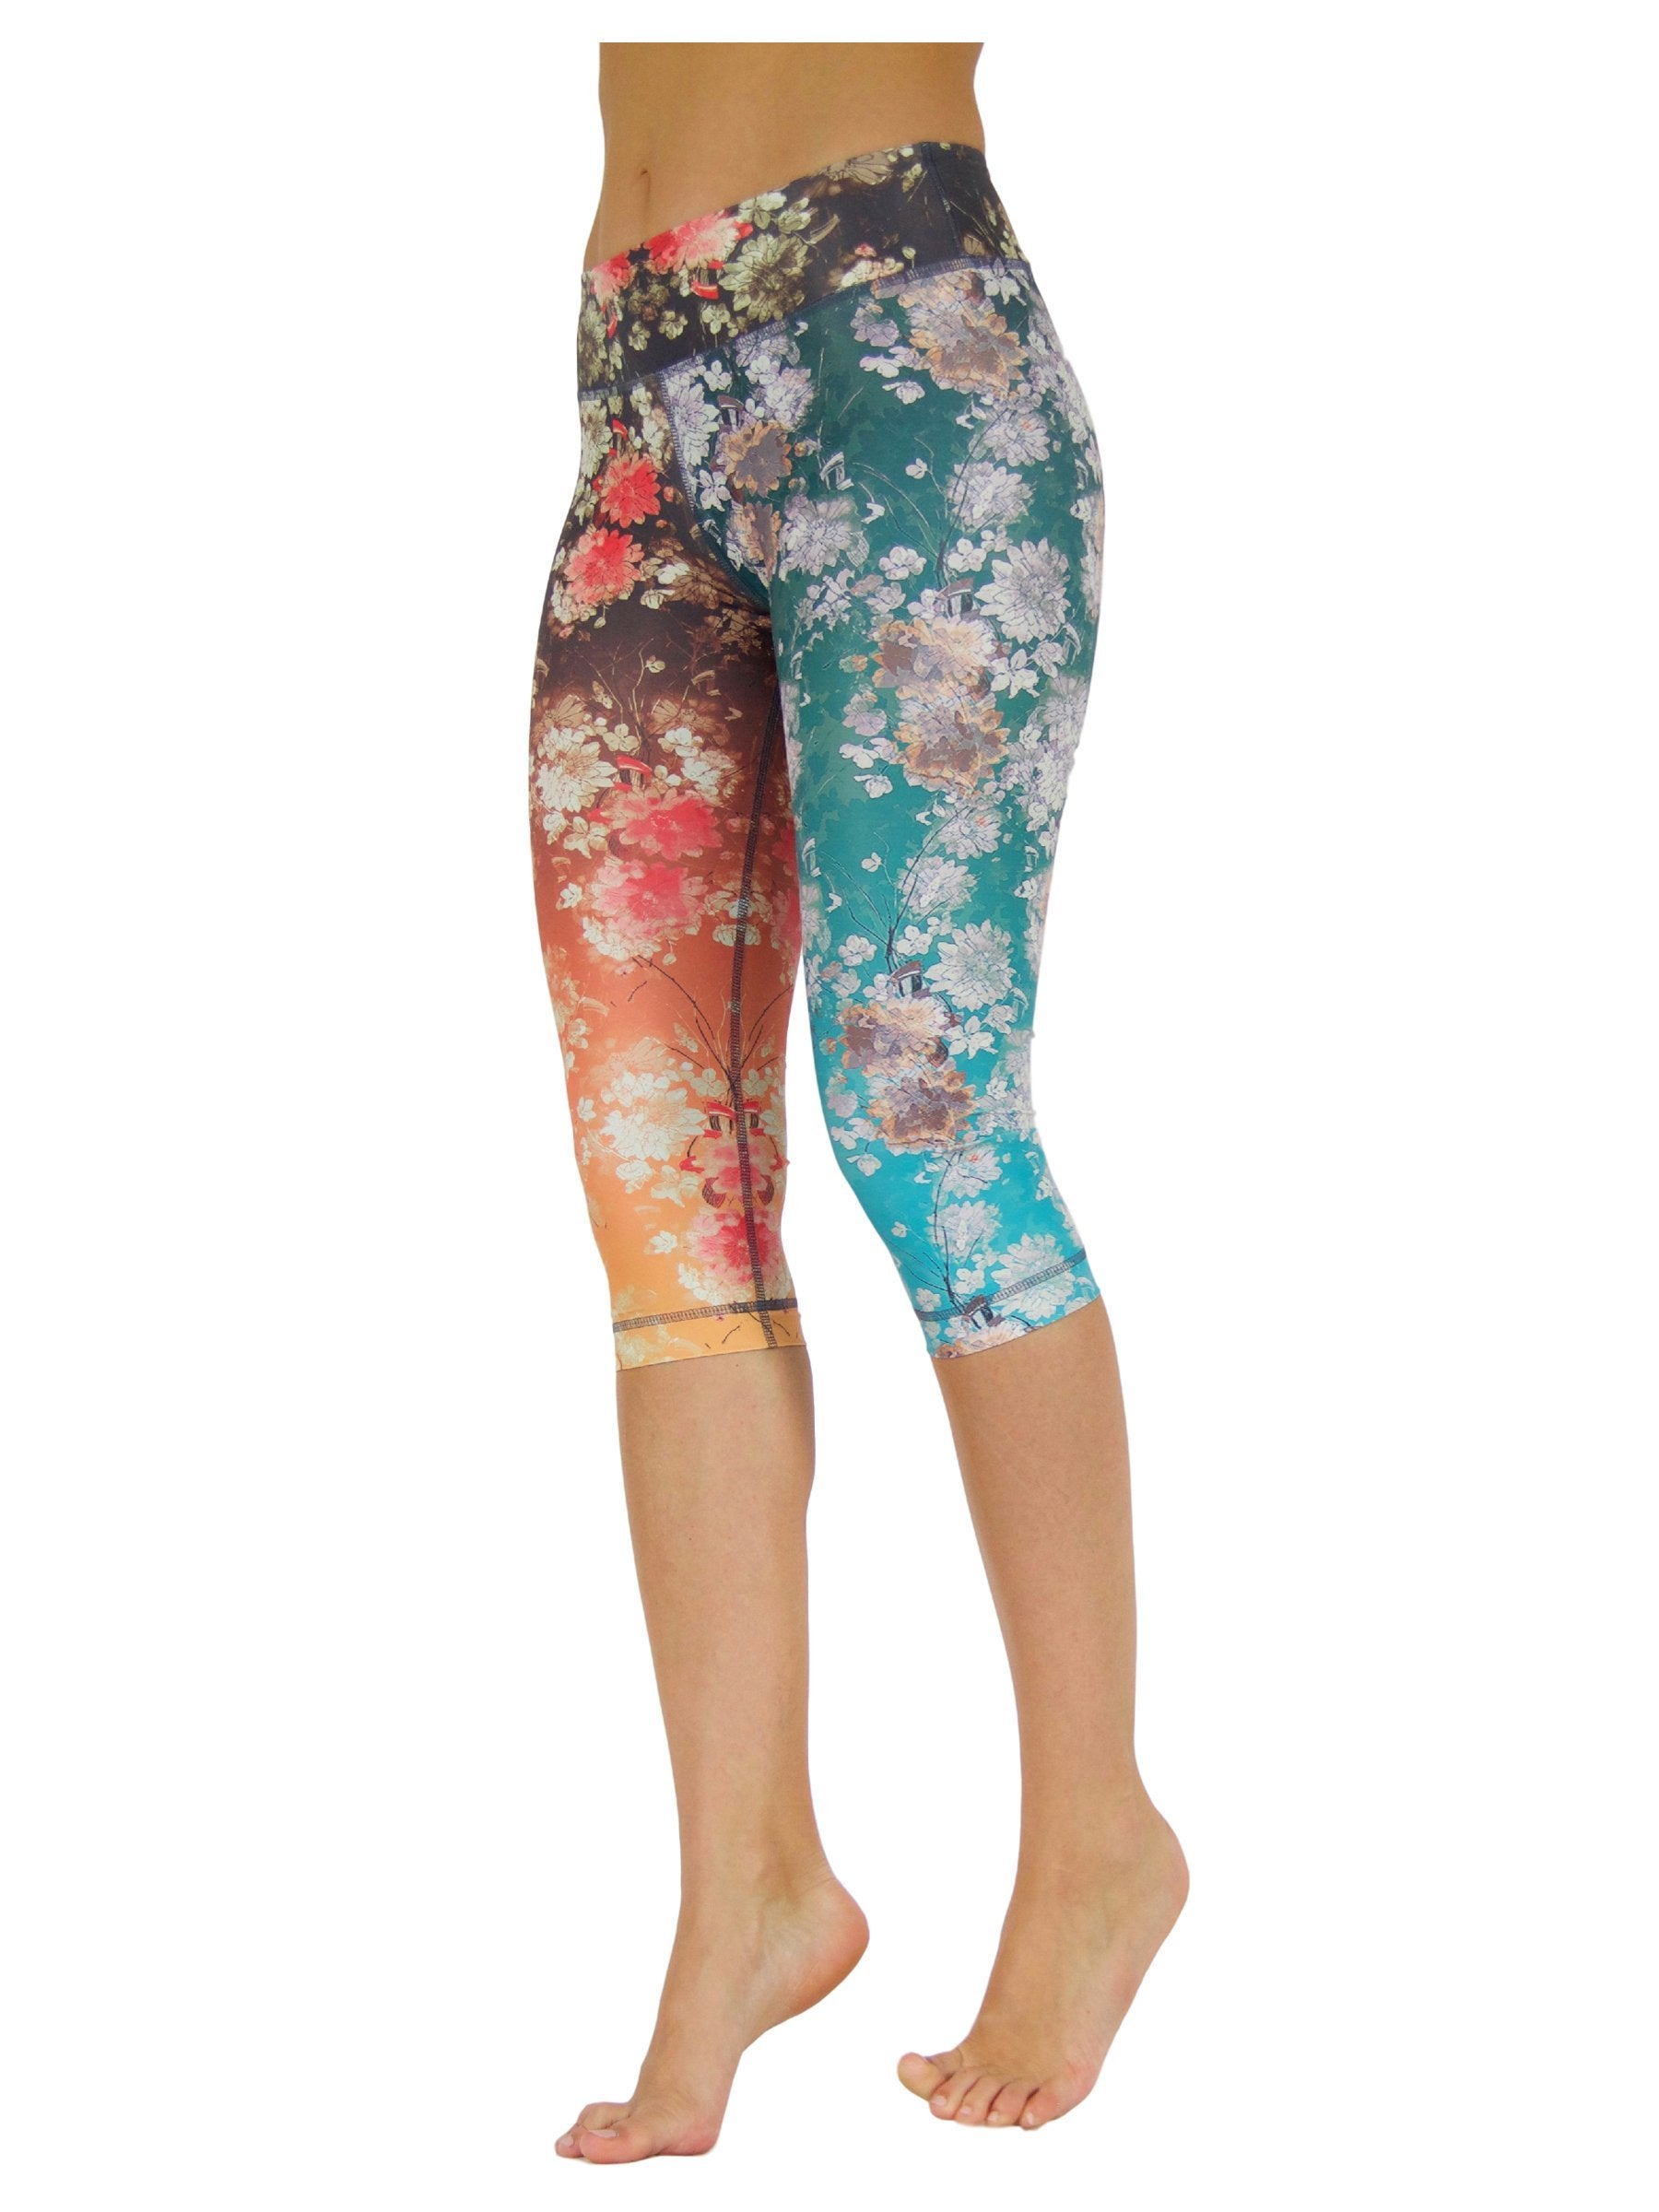 Summerbreeze by Niyama - High Quality, , Yoga Legging for Movement Artists.